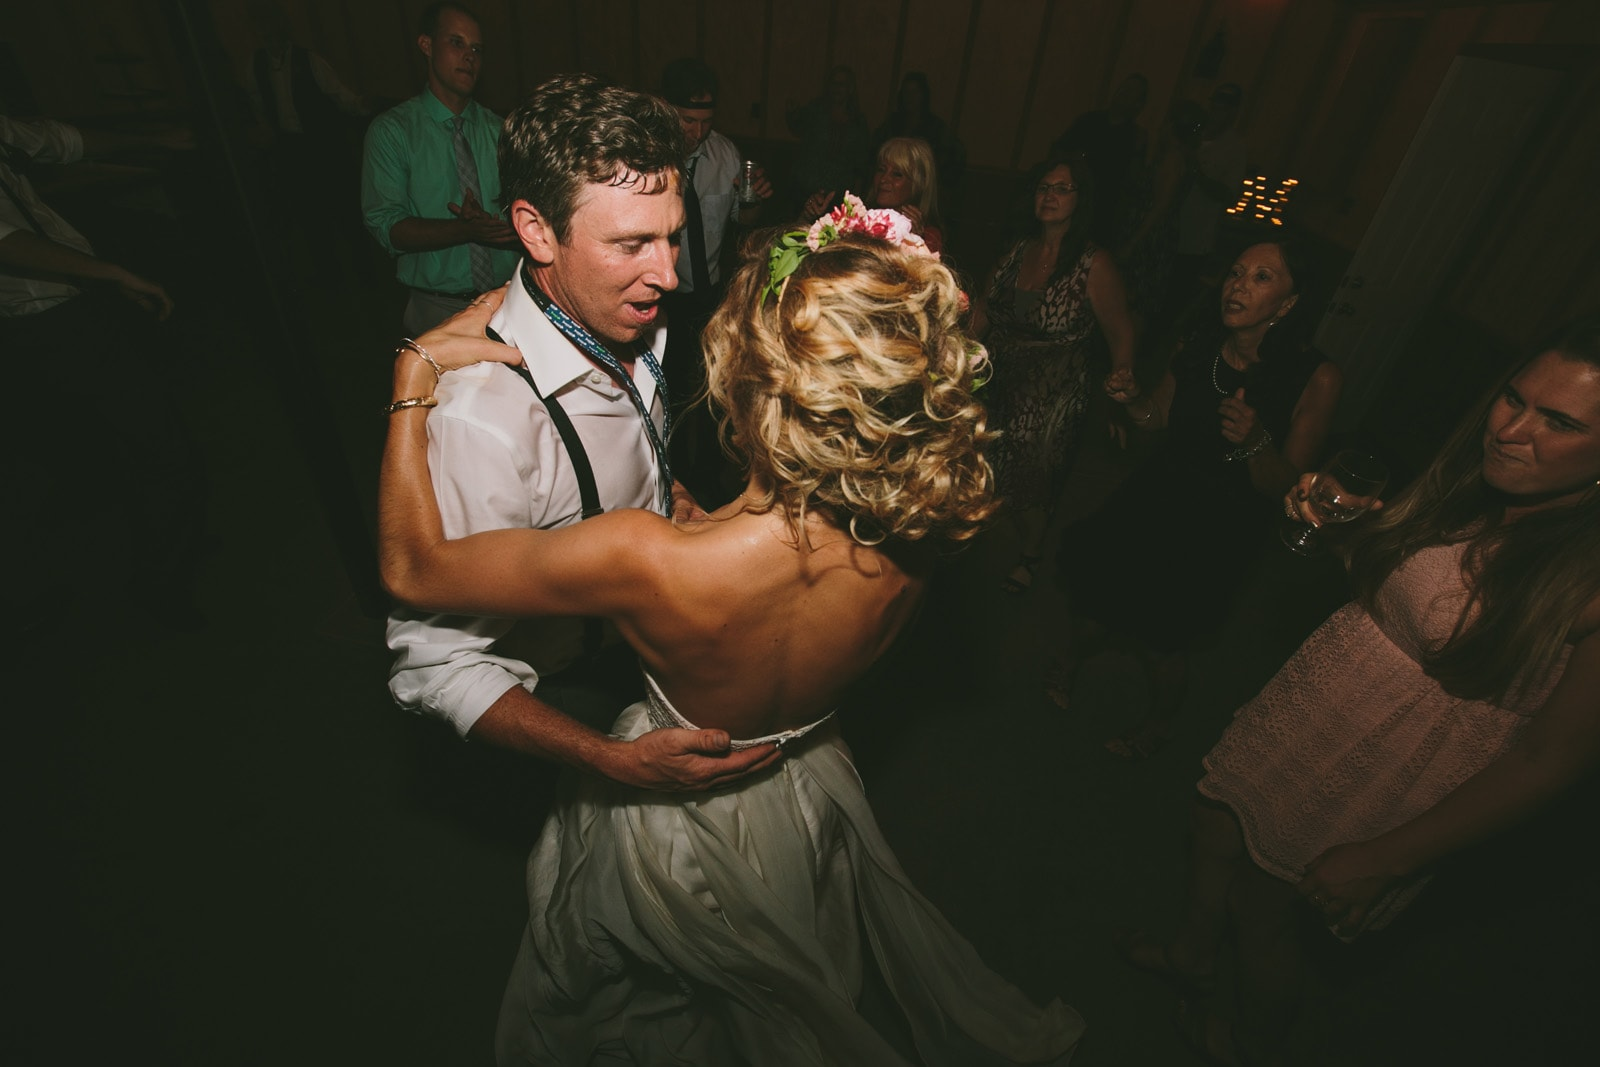 radonich_ranch_wedding_los_gatos_wedding_075